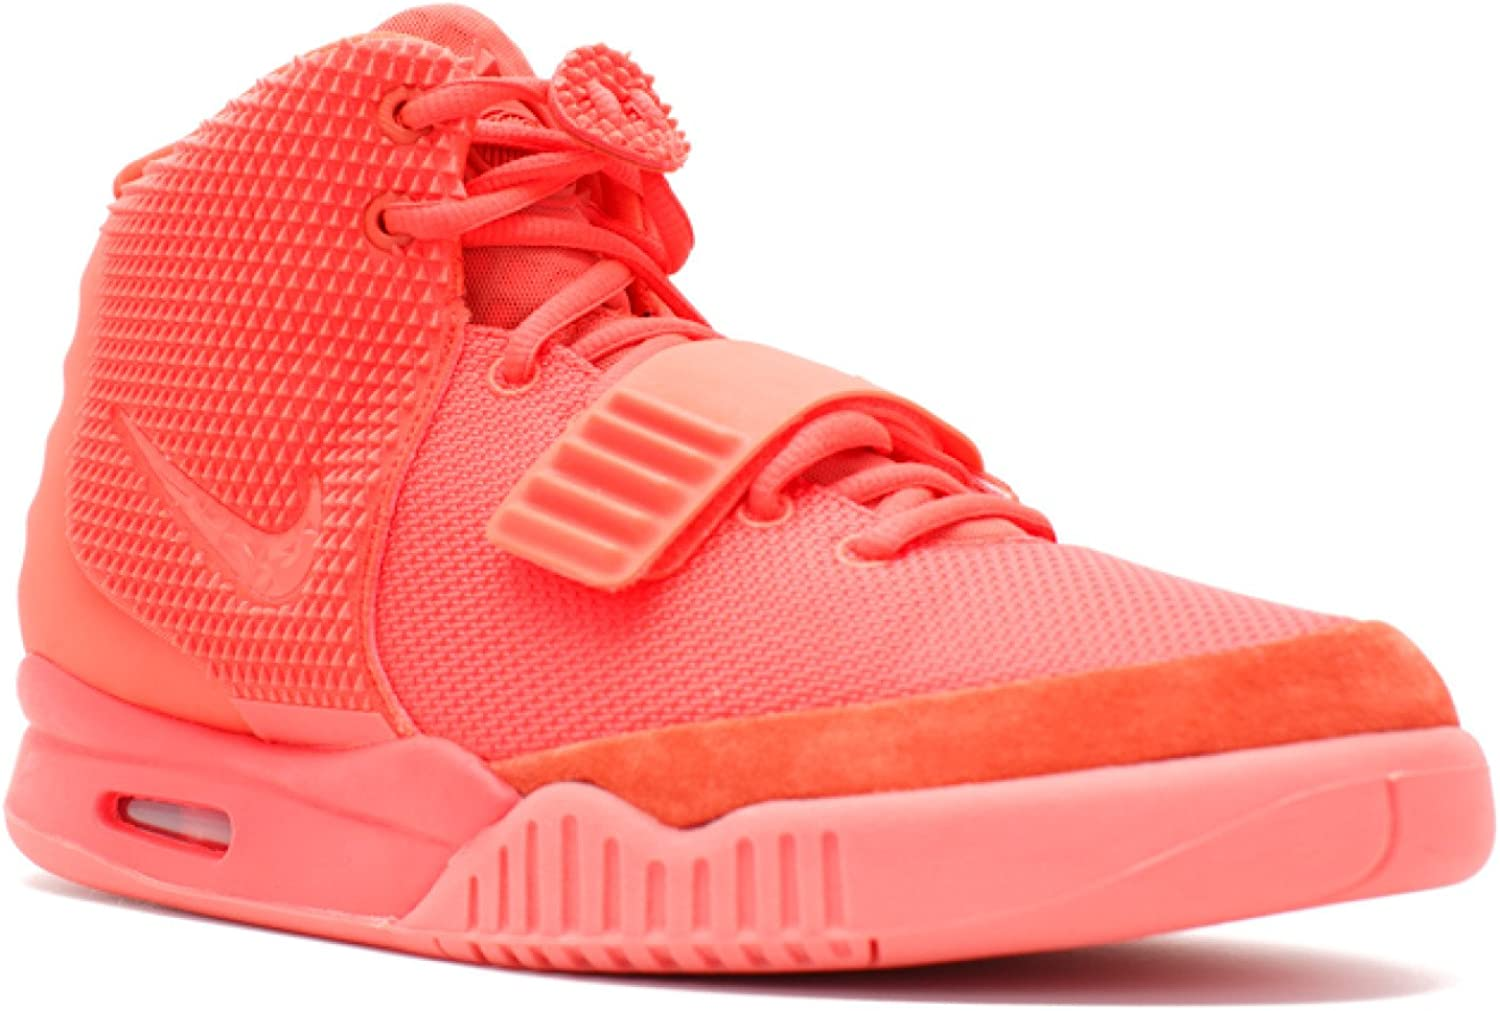 NIKE Air Yeezy 2 SP 'Red October' 508214 660 Size 13